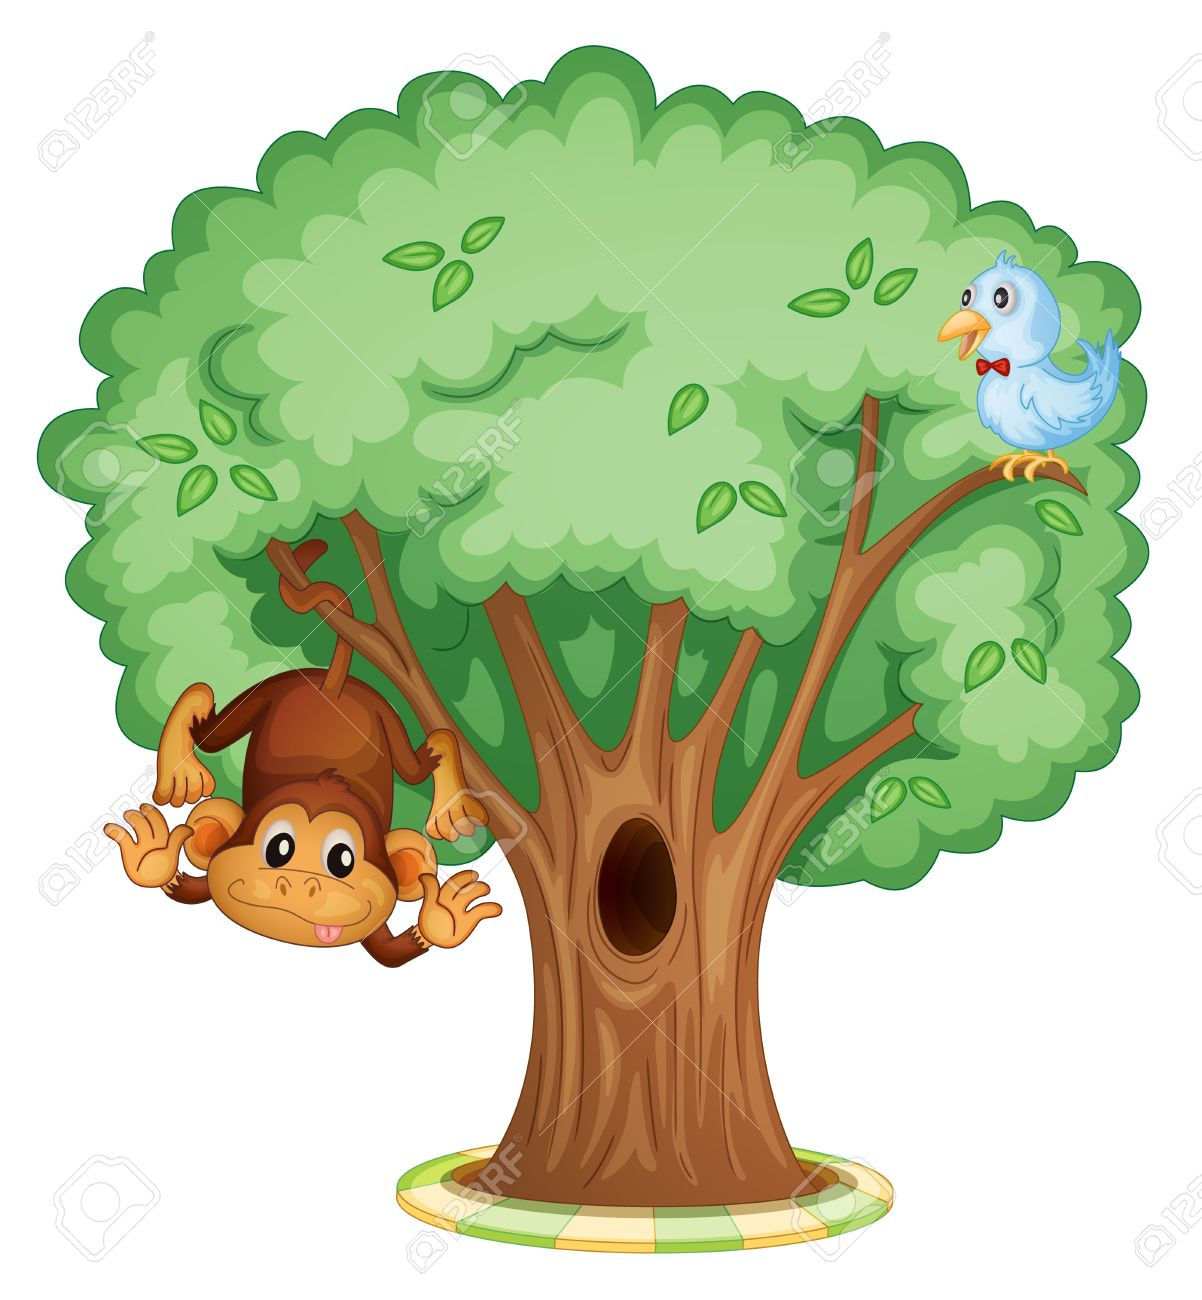 monkey and a bird in a tree royalty free cliparts vectors and